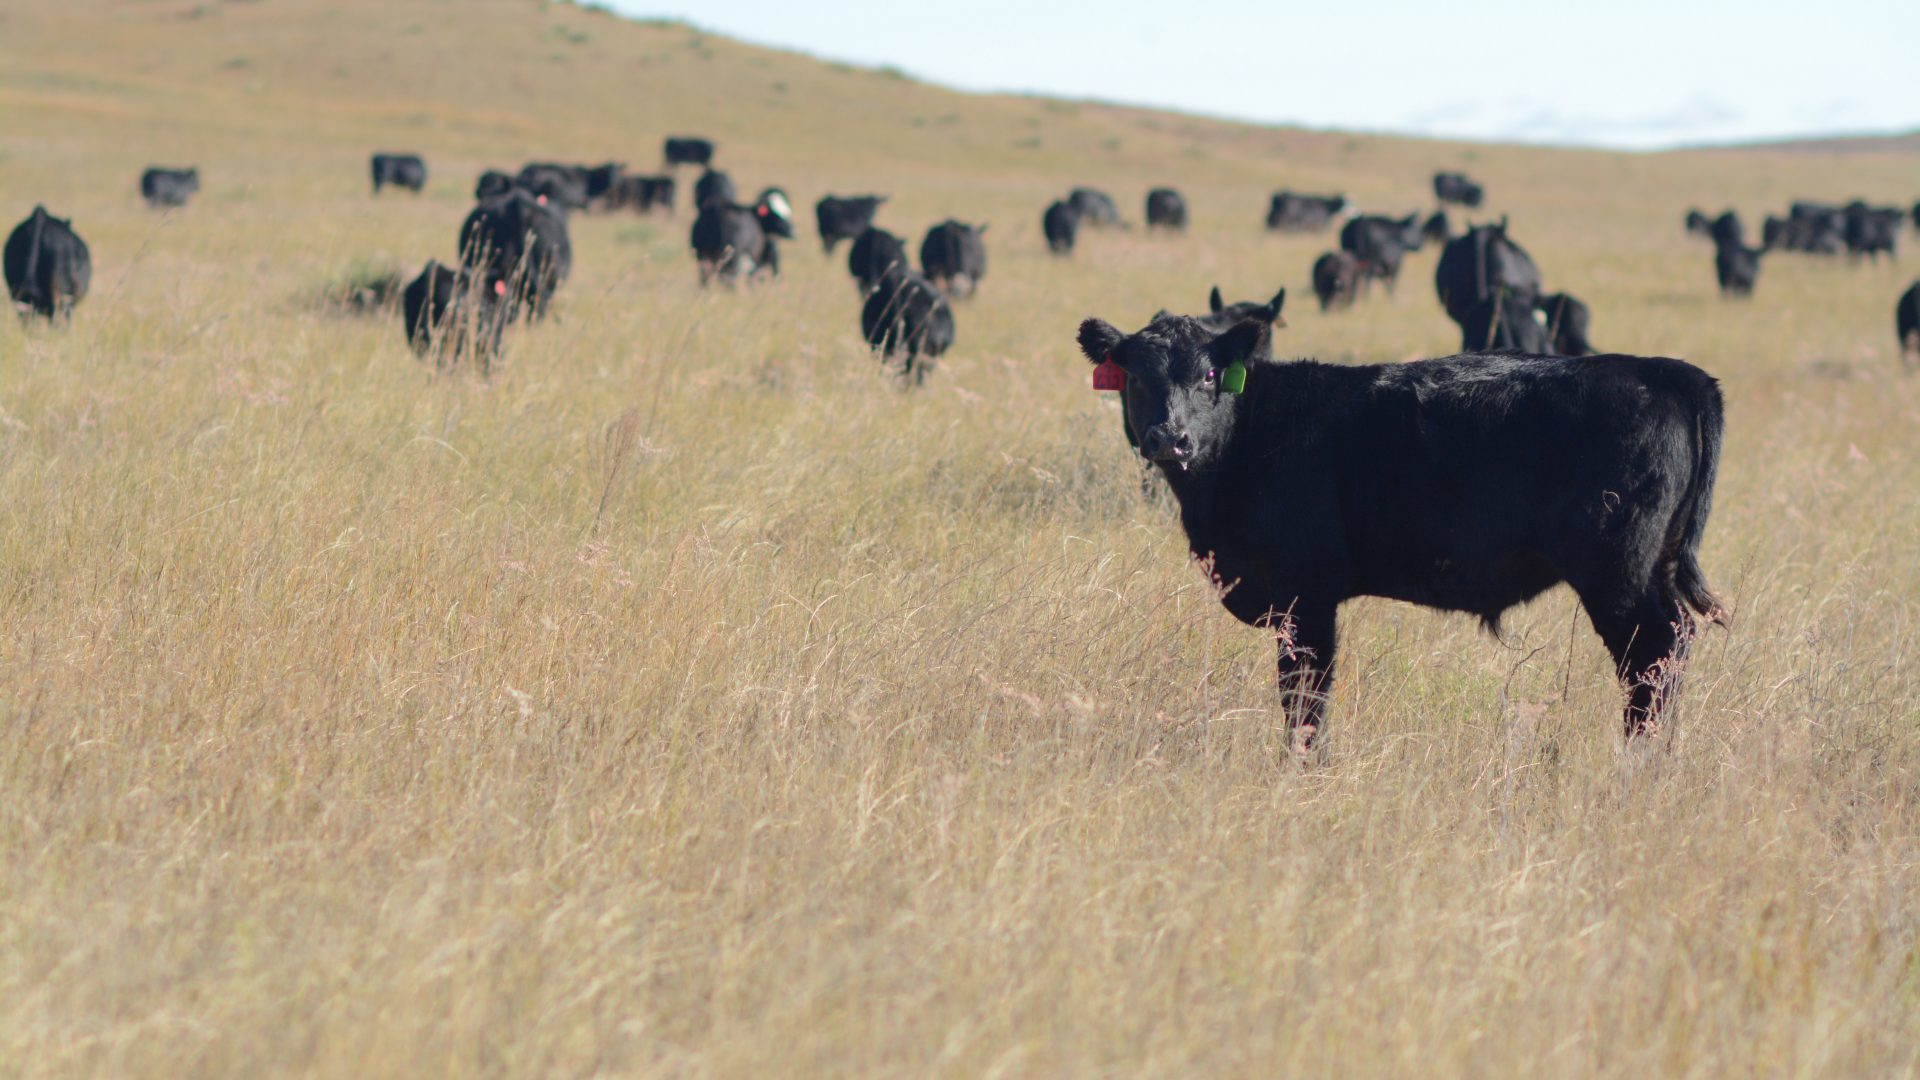 To add value to Angus calves, target this brand